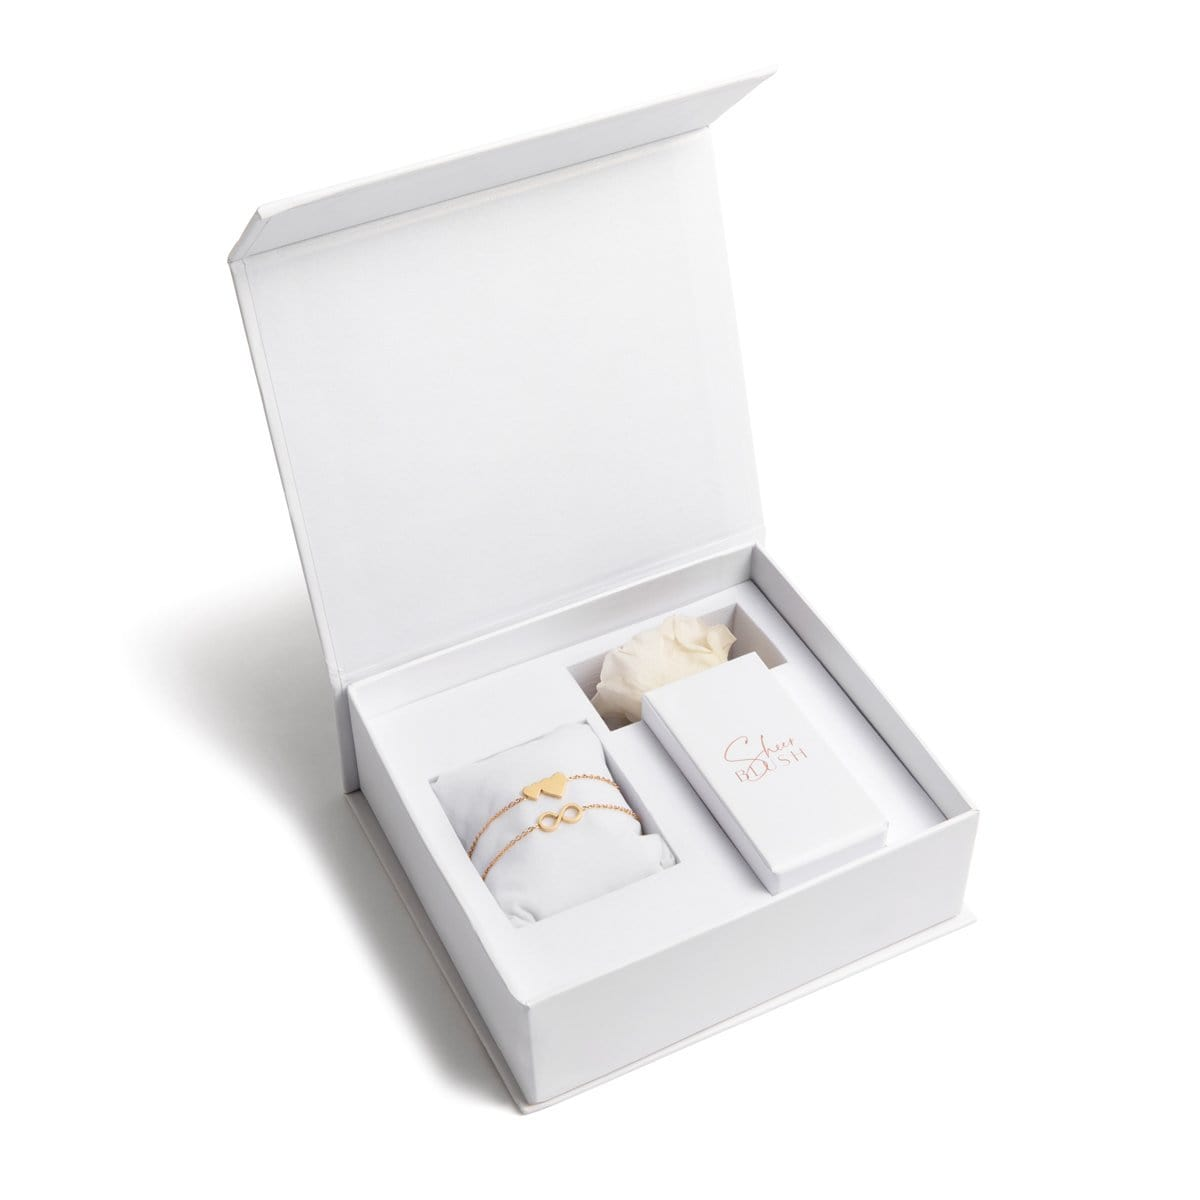 The Gold Infinite Love Geschenkset (White)